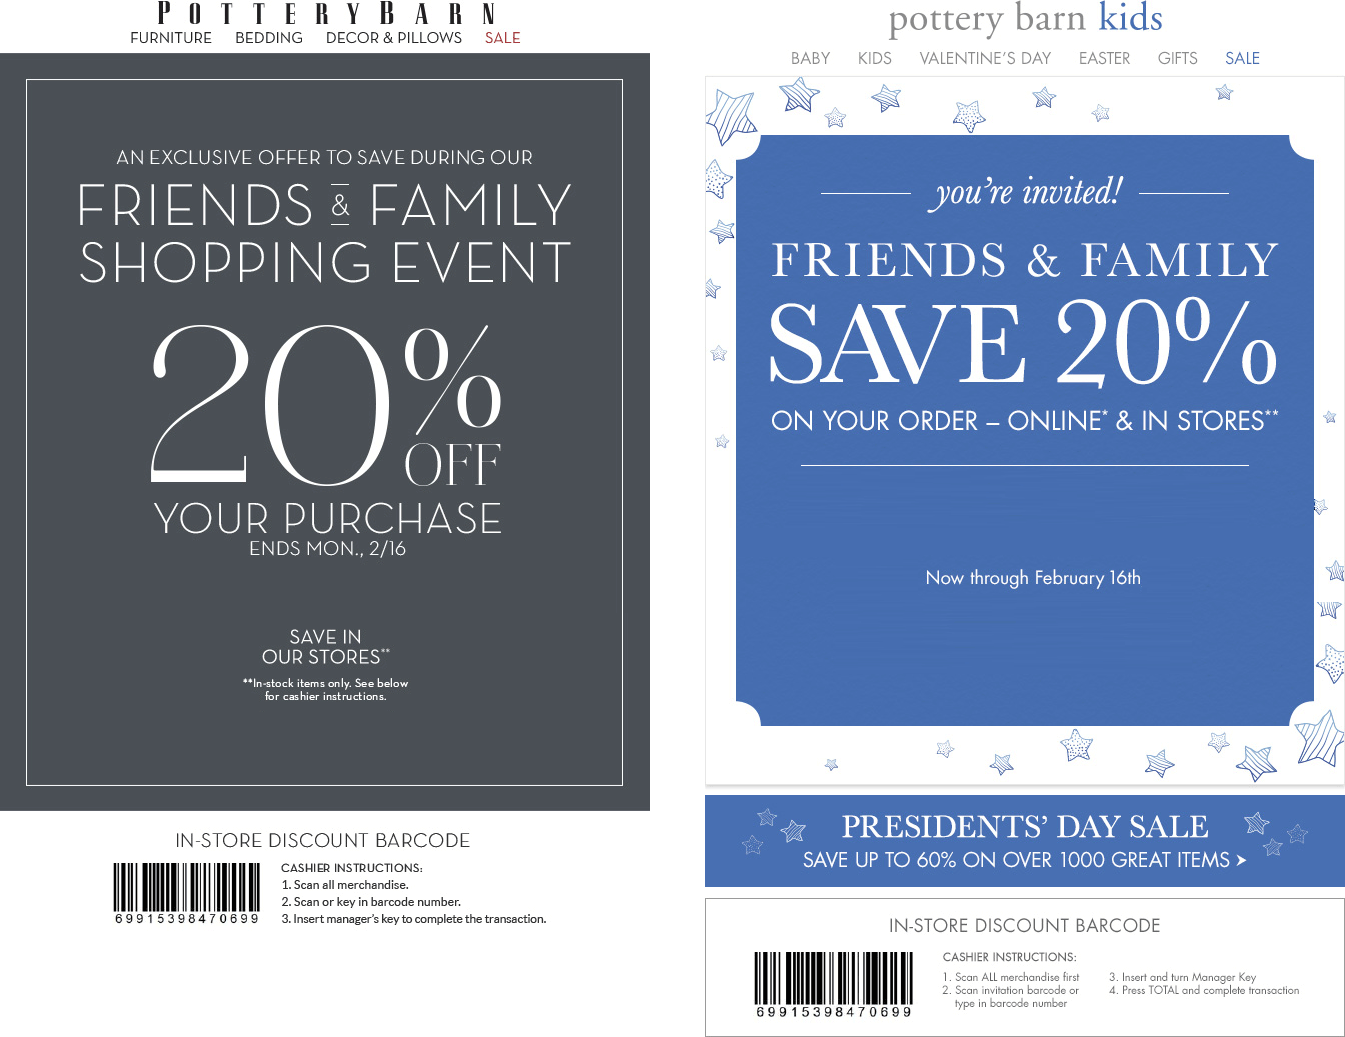 Pottery Barn Coupon September 2018 20% off at Pottery Barn & Pottery Barn Kids